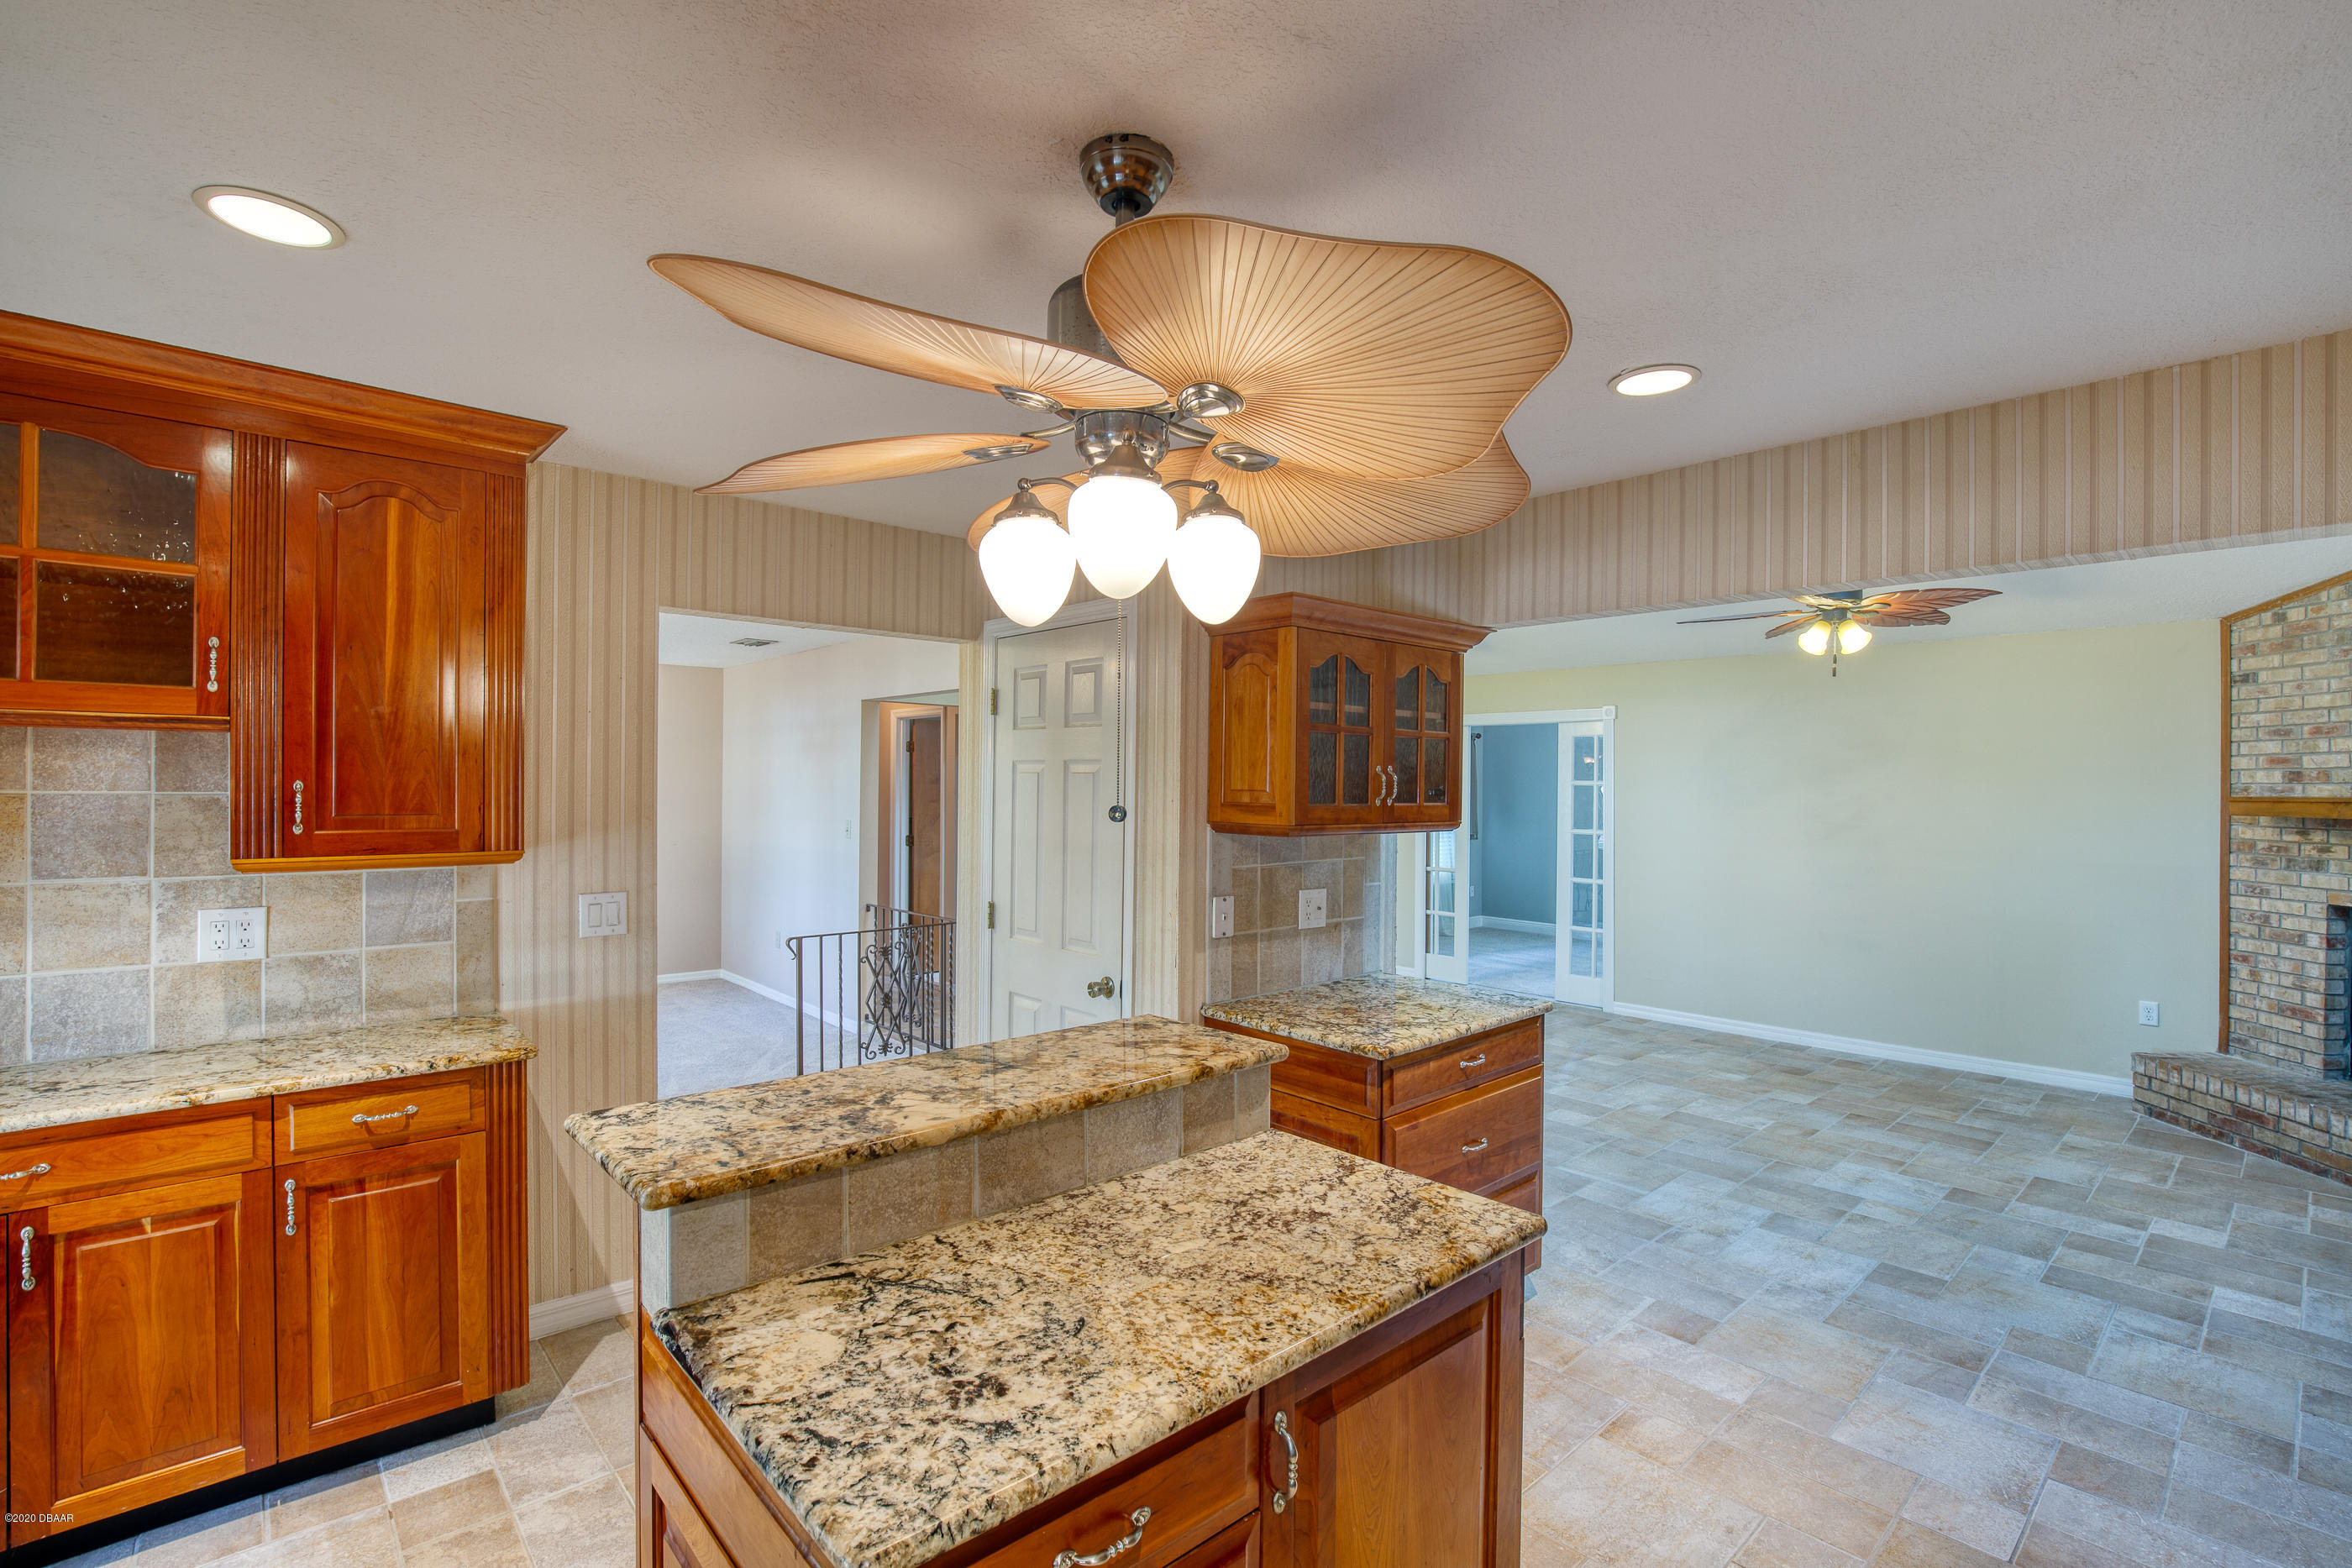 1116 Sherbourne Ormond Beach - 5